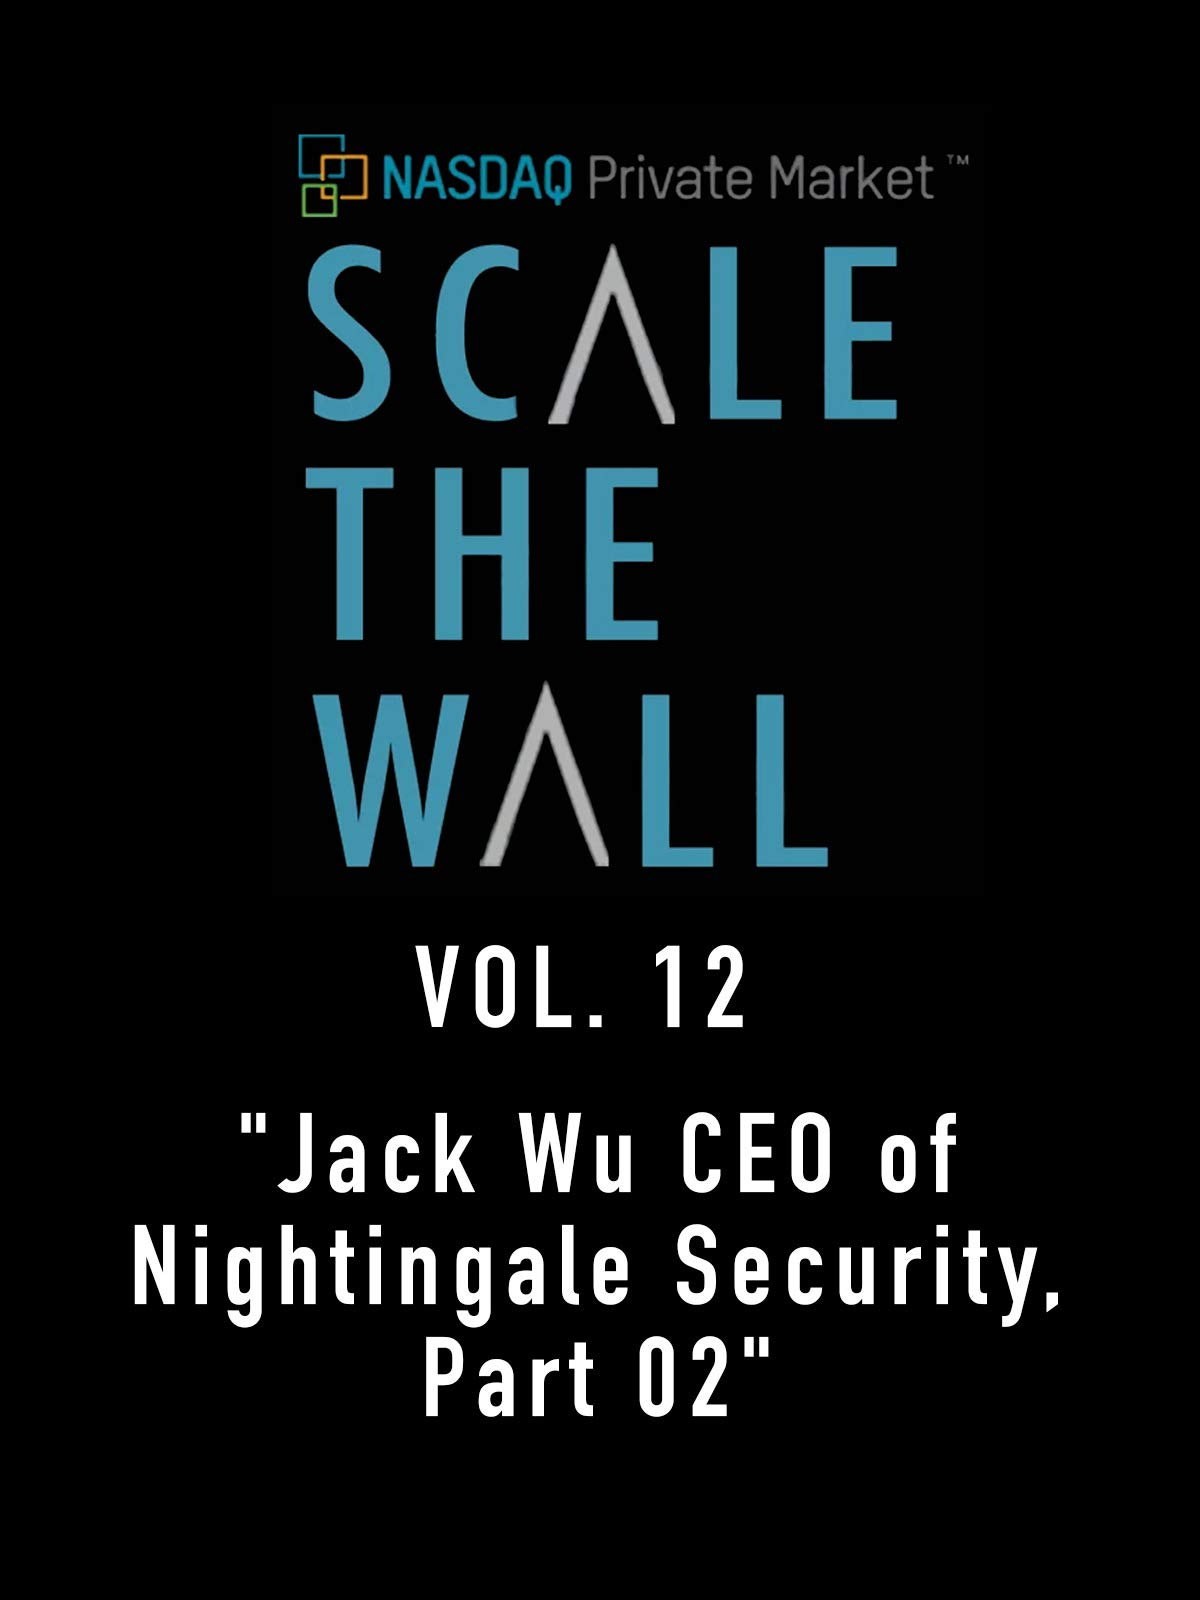 Scale the Wall Vol. 12